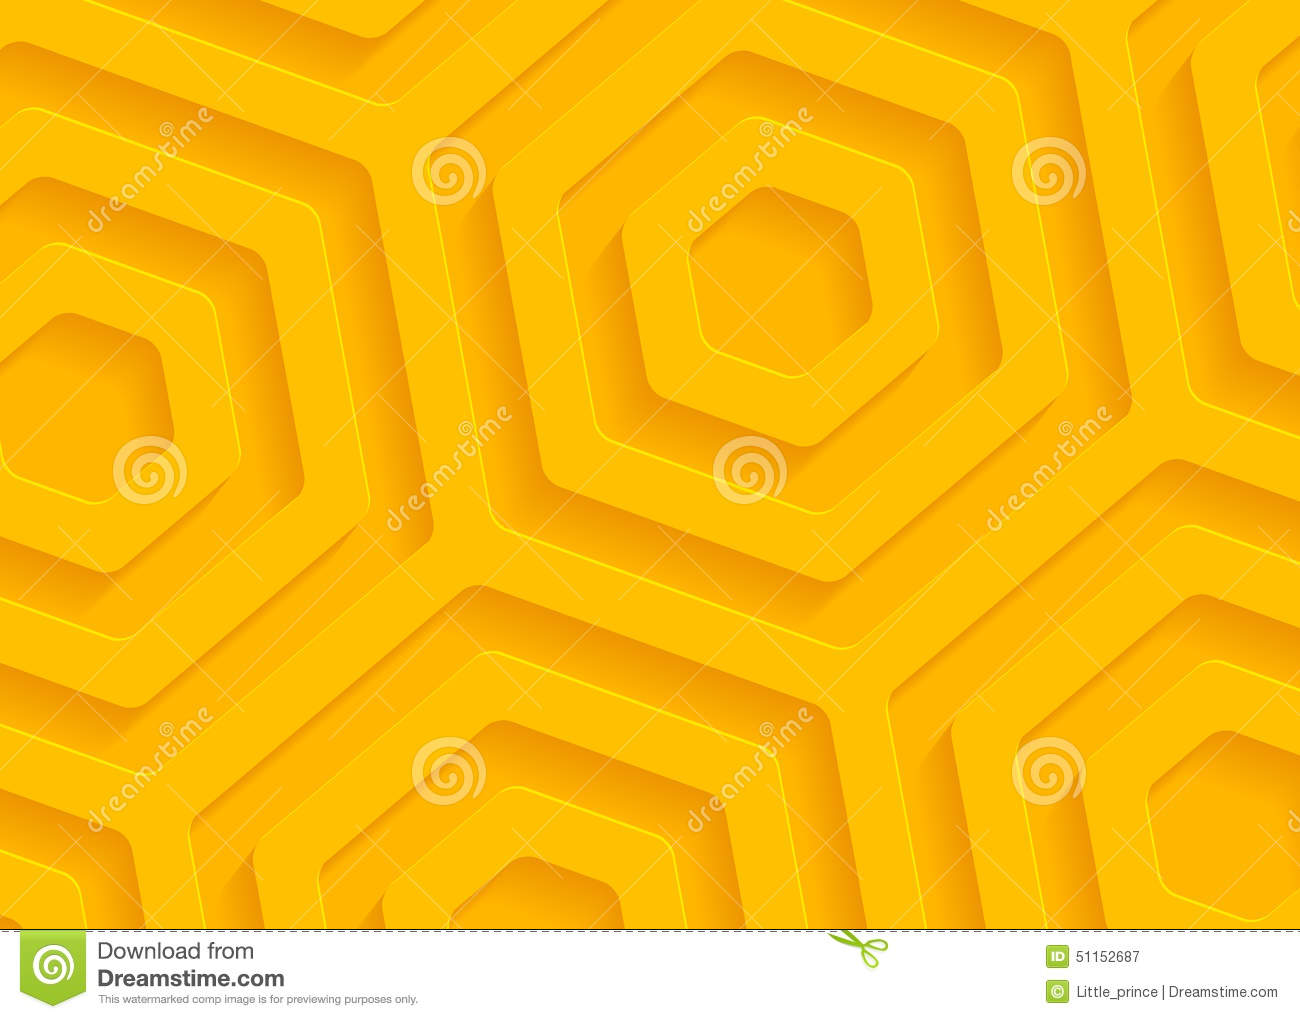 Yellow paper geometric pattern, abstract background template for website, banner, business card, invitation